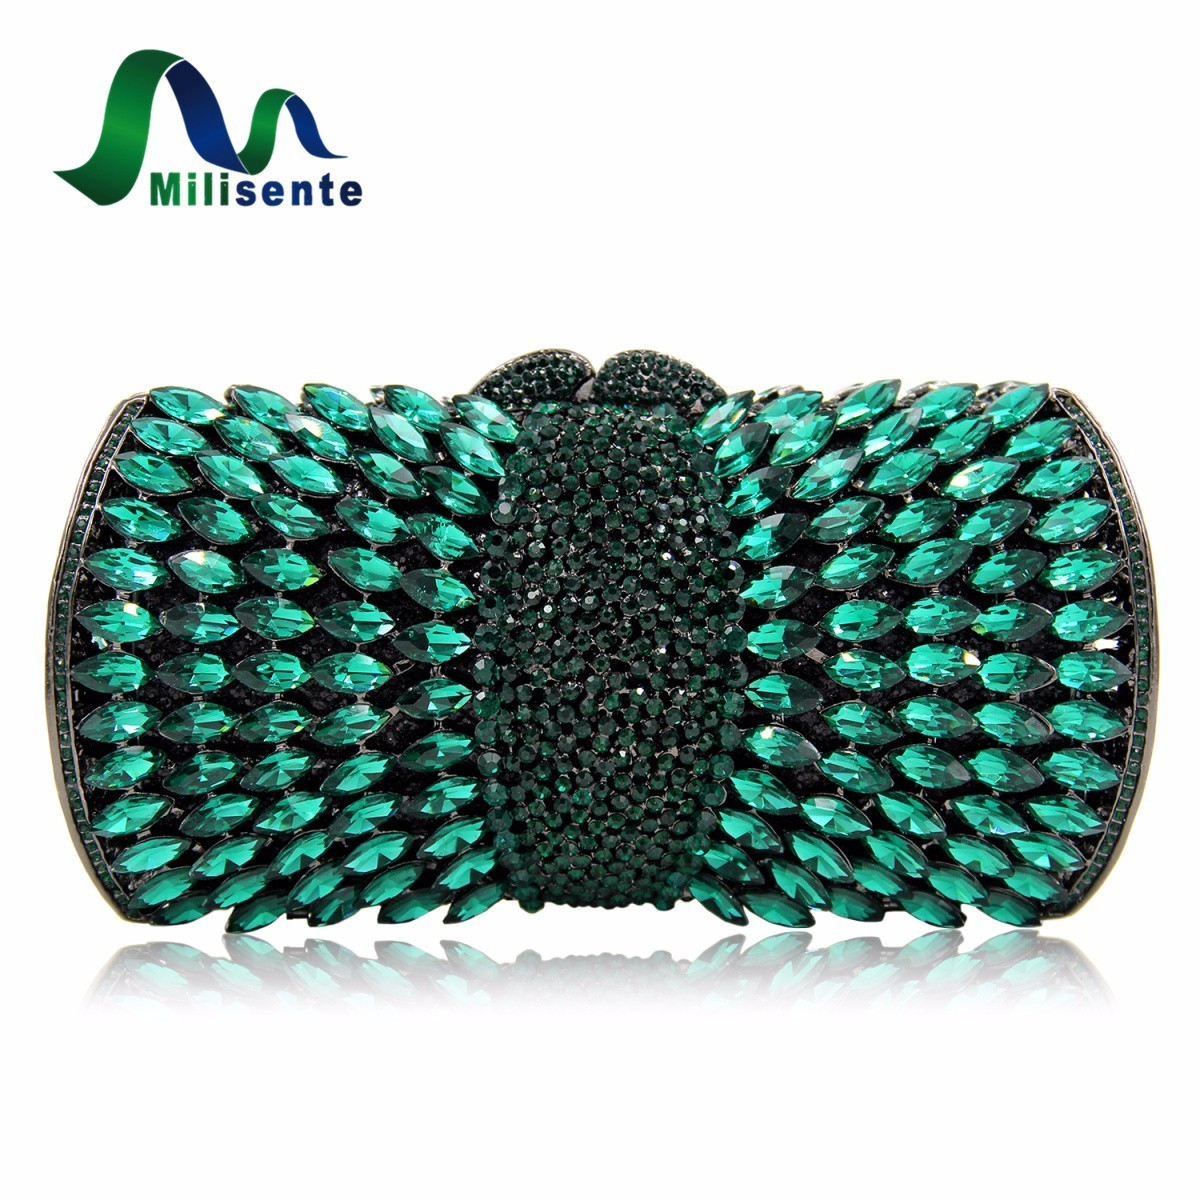 Milisente Women Evening Crystal Bags Ladies Sliver Party Bag Female Gold Wedding Clutches Purses milisente women evening bags silver ladies wedding clutches bag gold luxury crystal party diamonds clutch